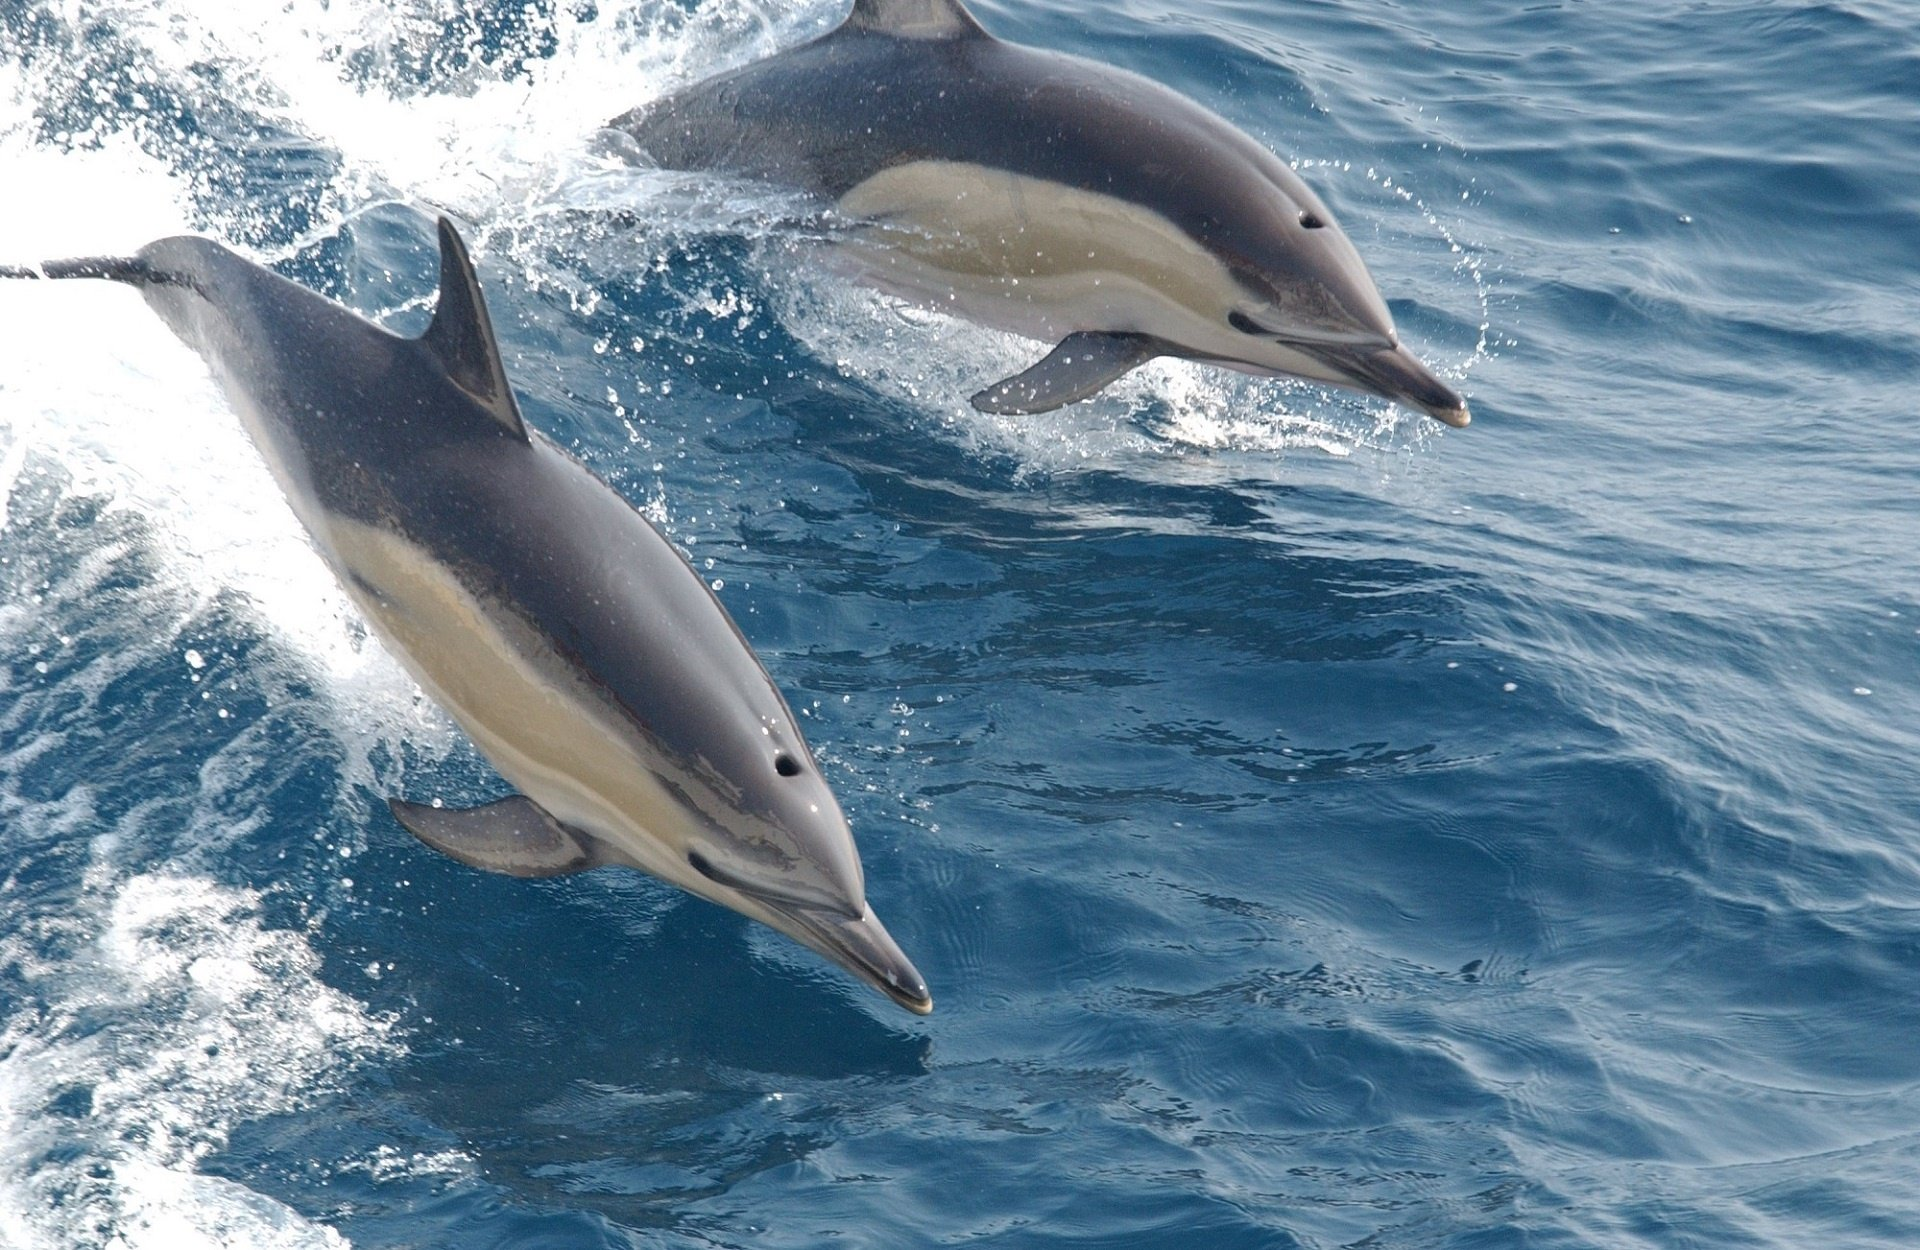 Dolphin Watching in England 2019 - Best Time